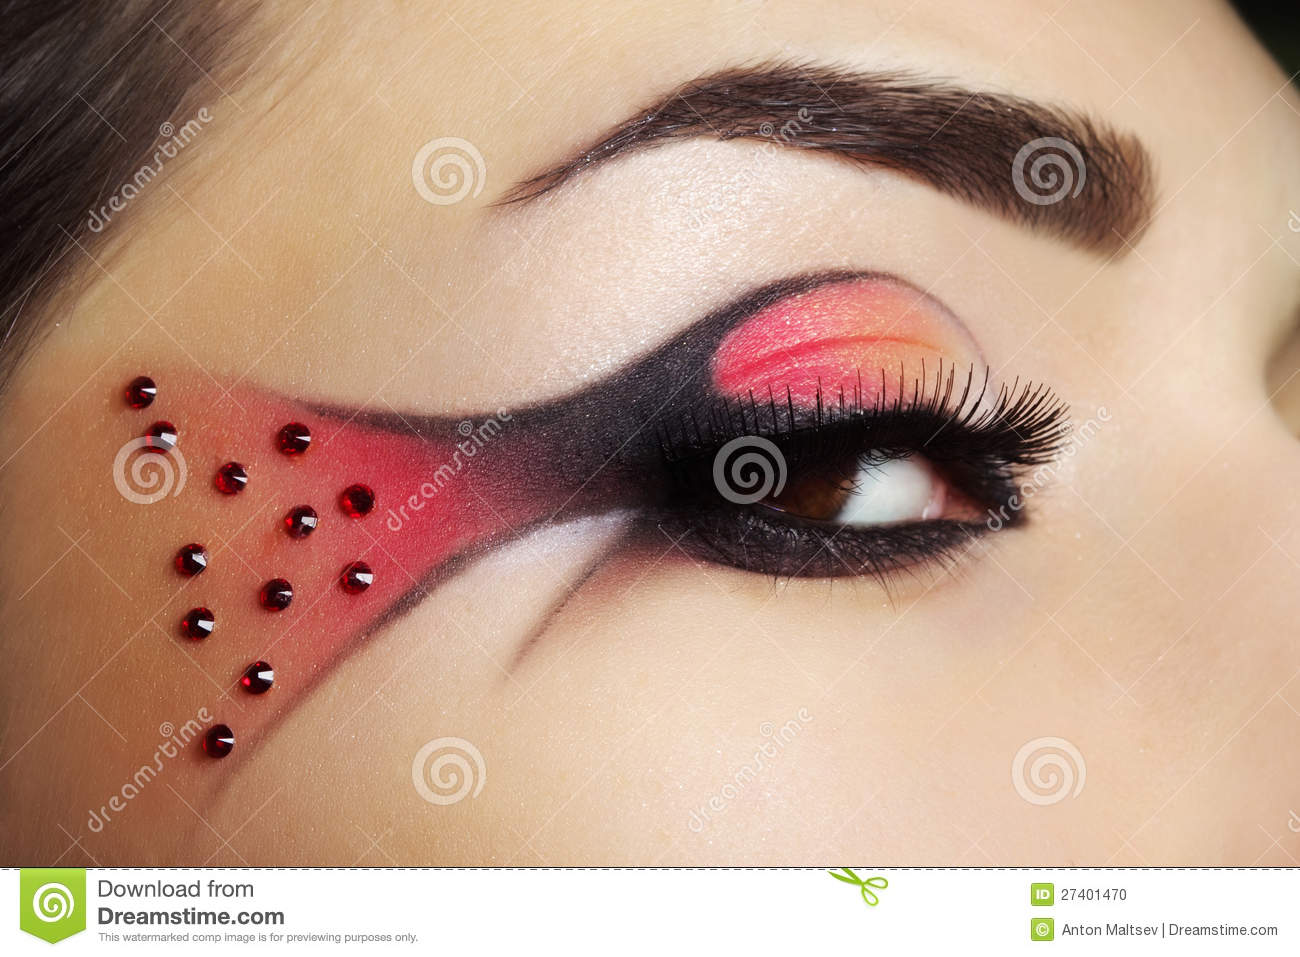 Creative Eye Make Up Stock Photo Image Of Eyebrow Shadows 27401470